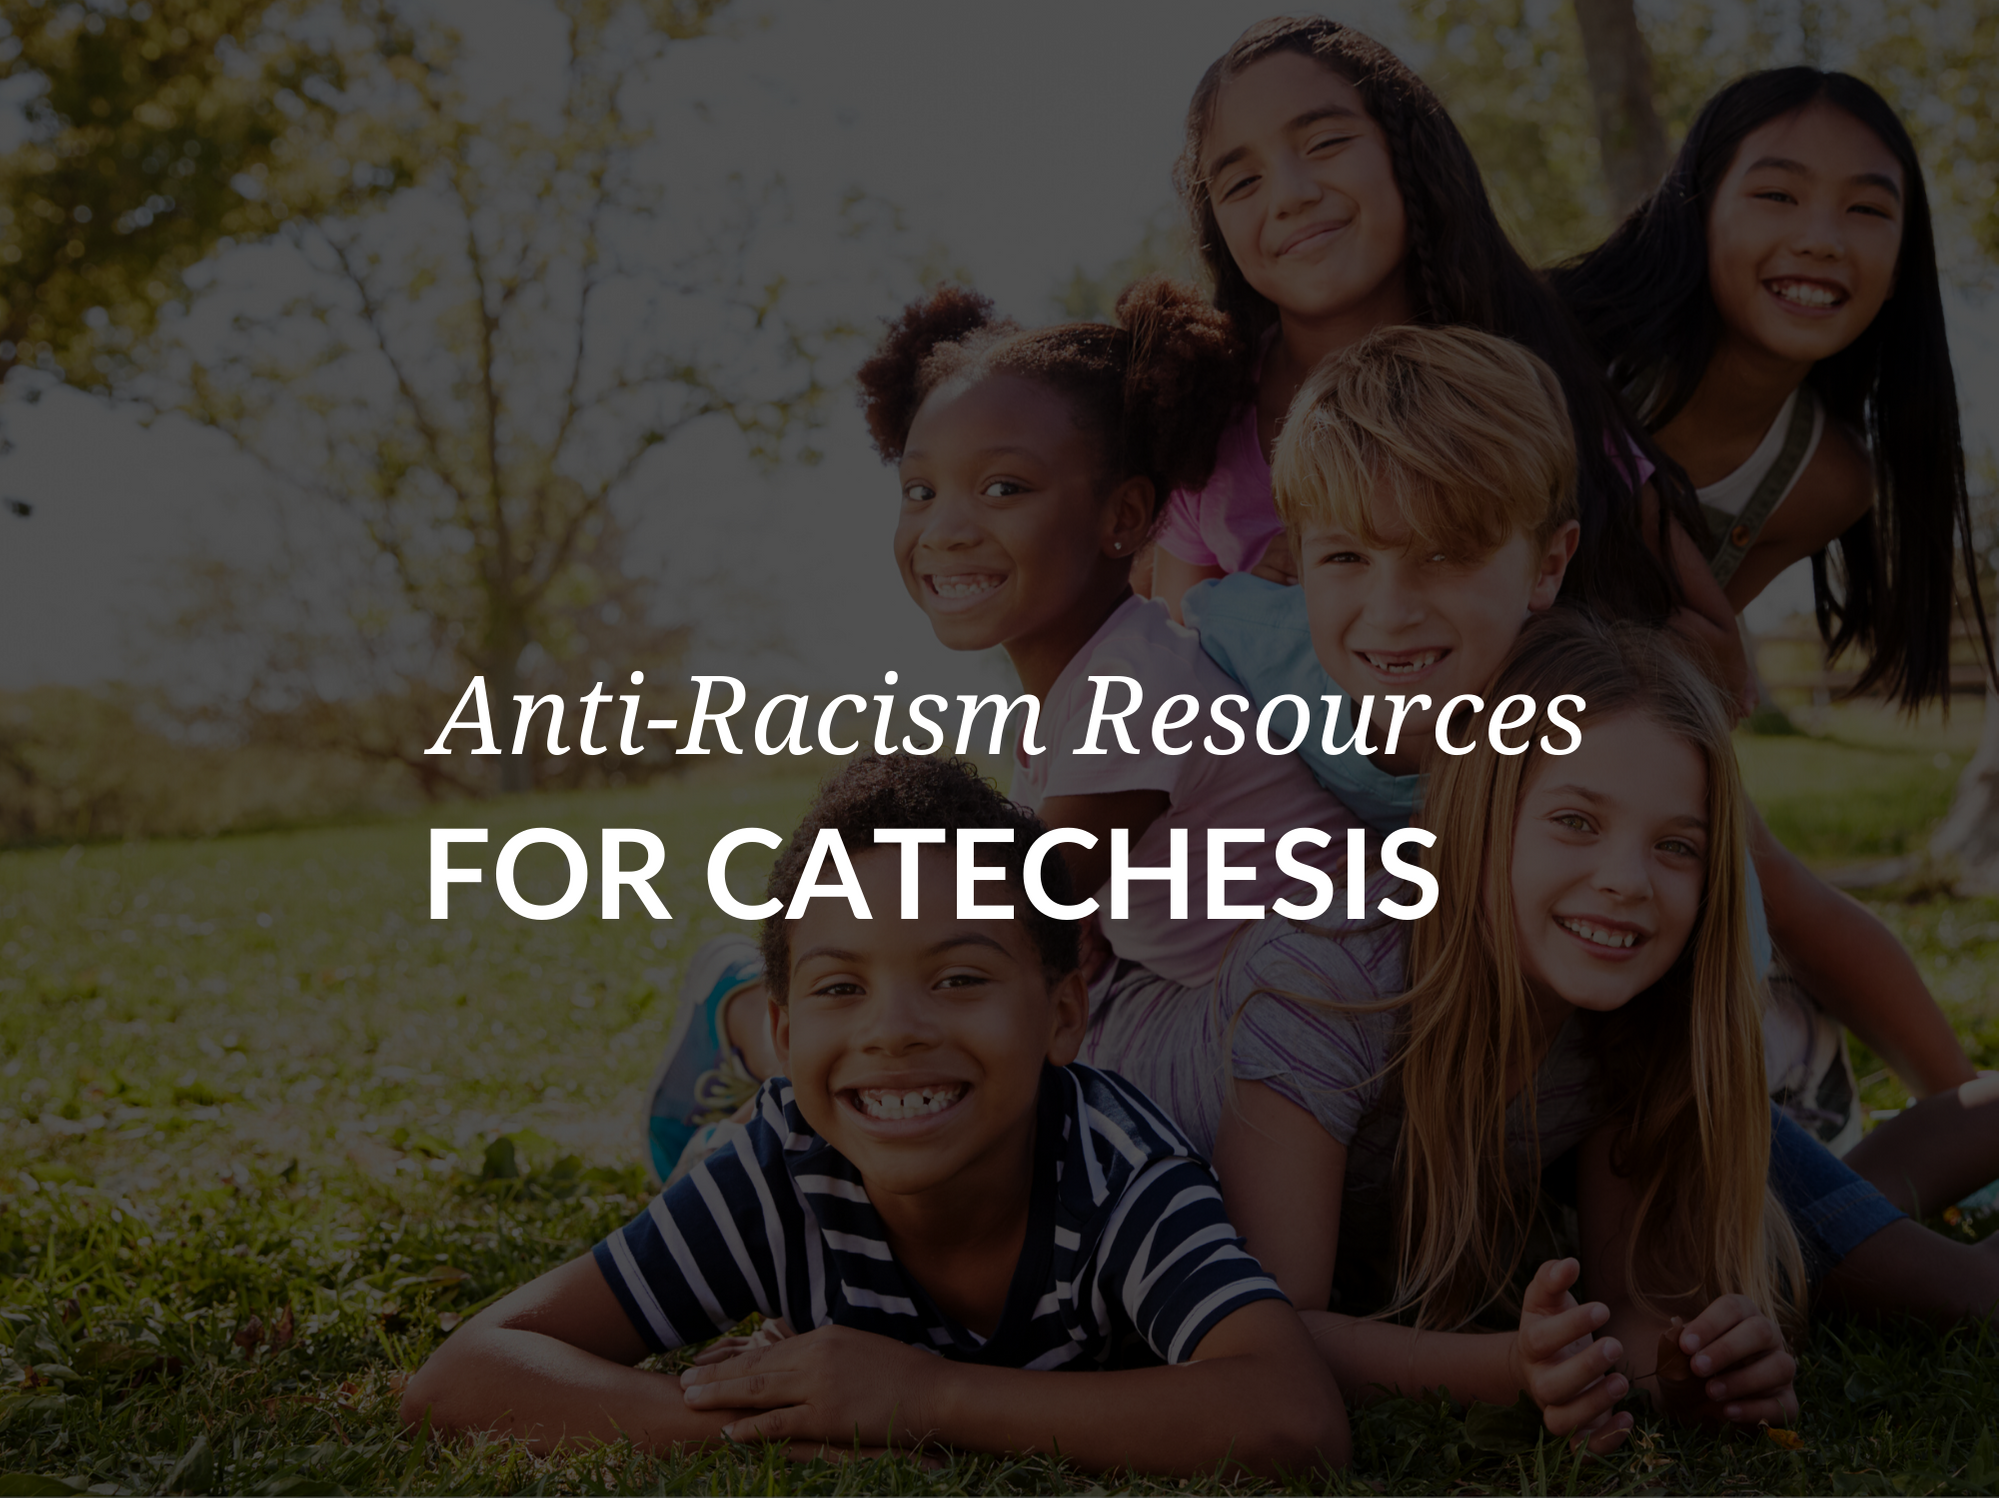 anti-racism-resources-for-catechesis-and-catholic-faith-formation